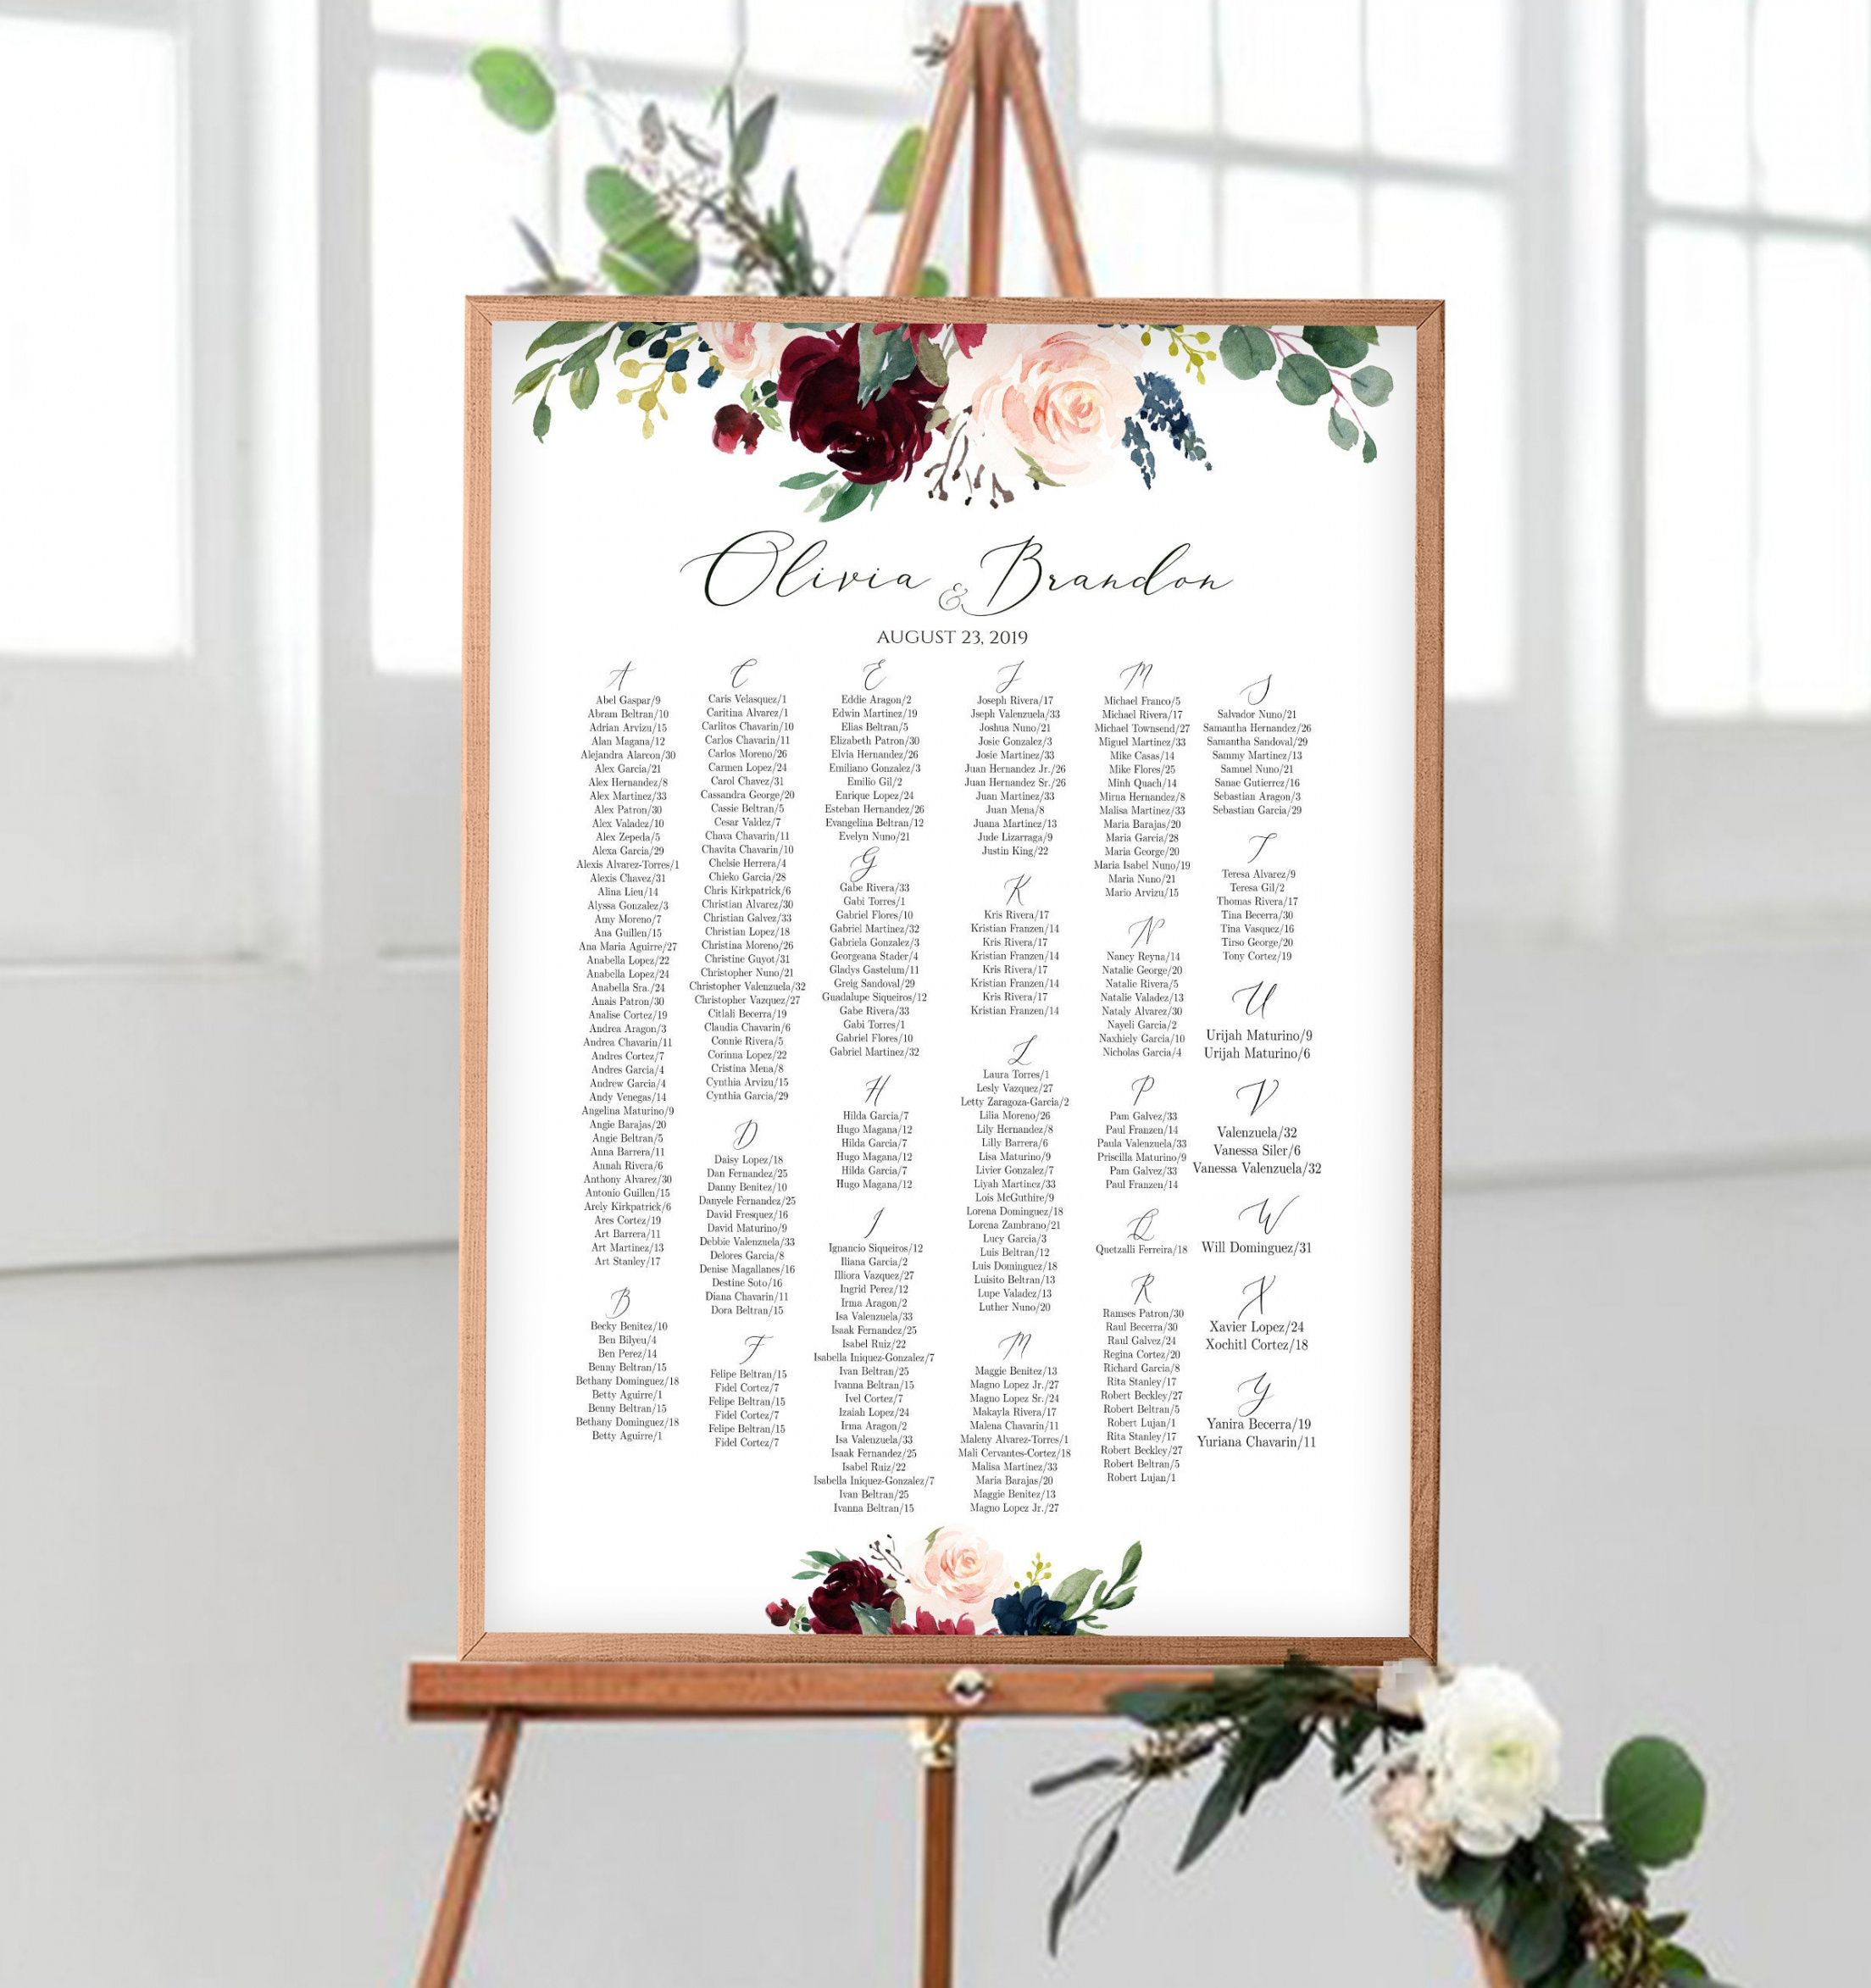 alphabetical seating chart template editable wedding table seating chart up  to 300 guests find your seat seating charts burgundy merlot boho wedding seating chart alphabetical order template doc